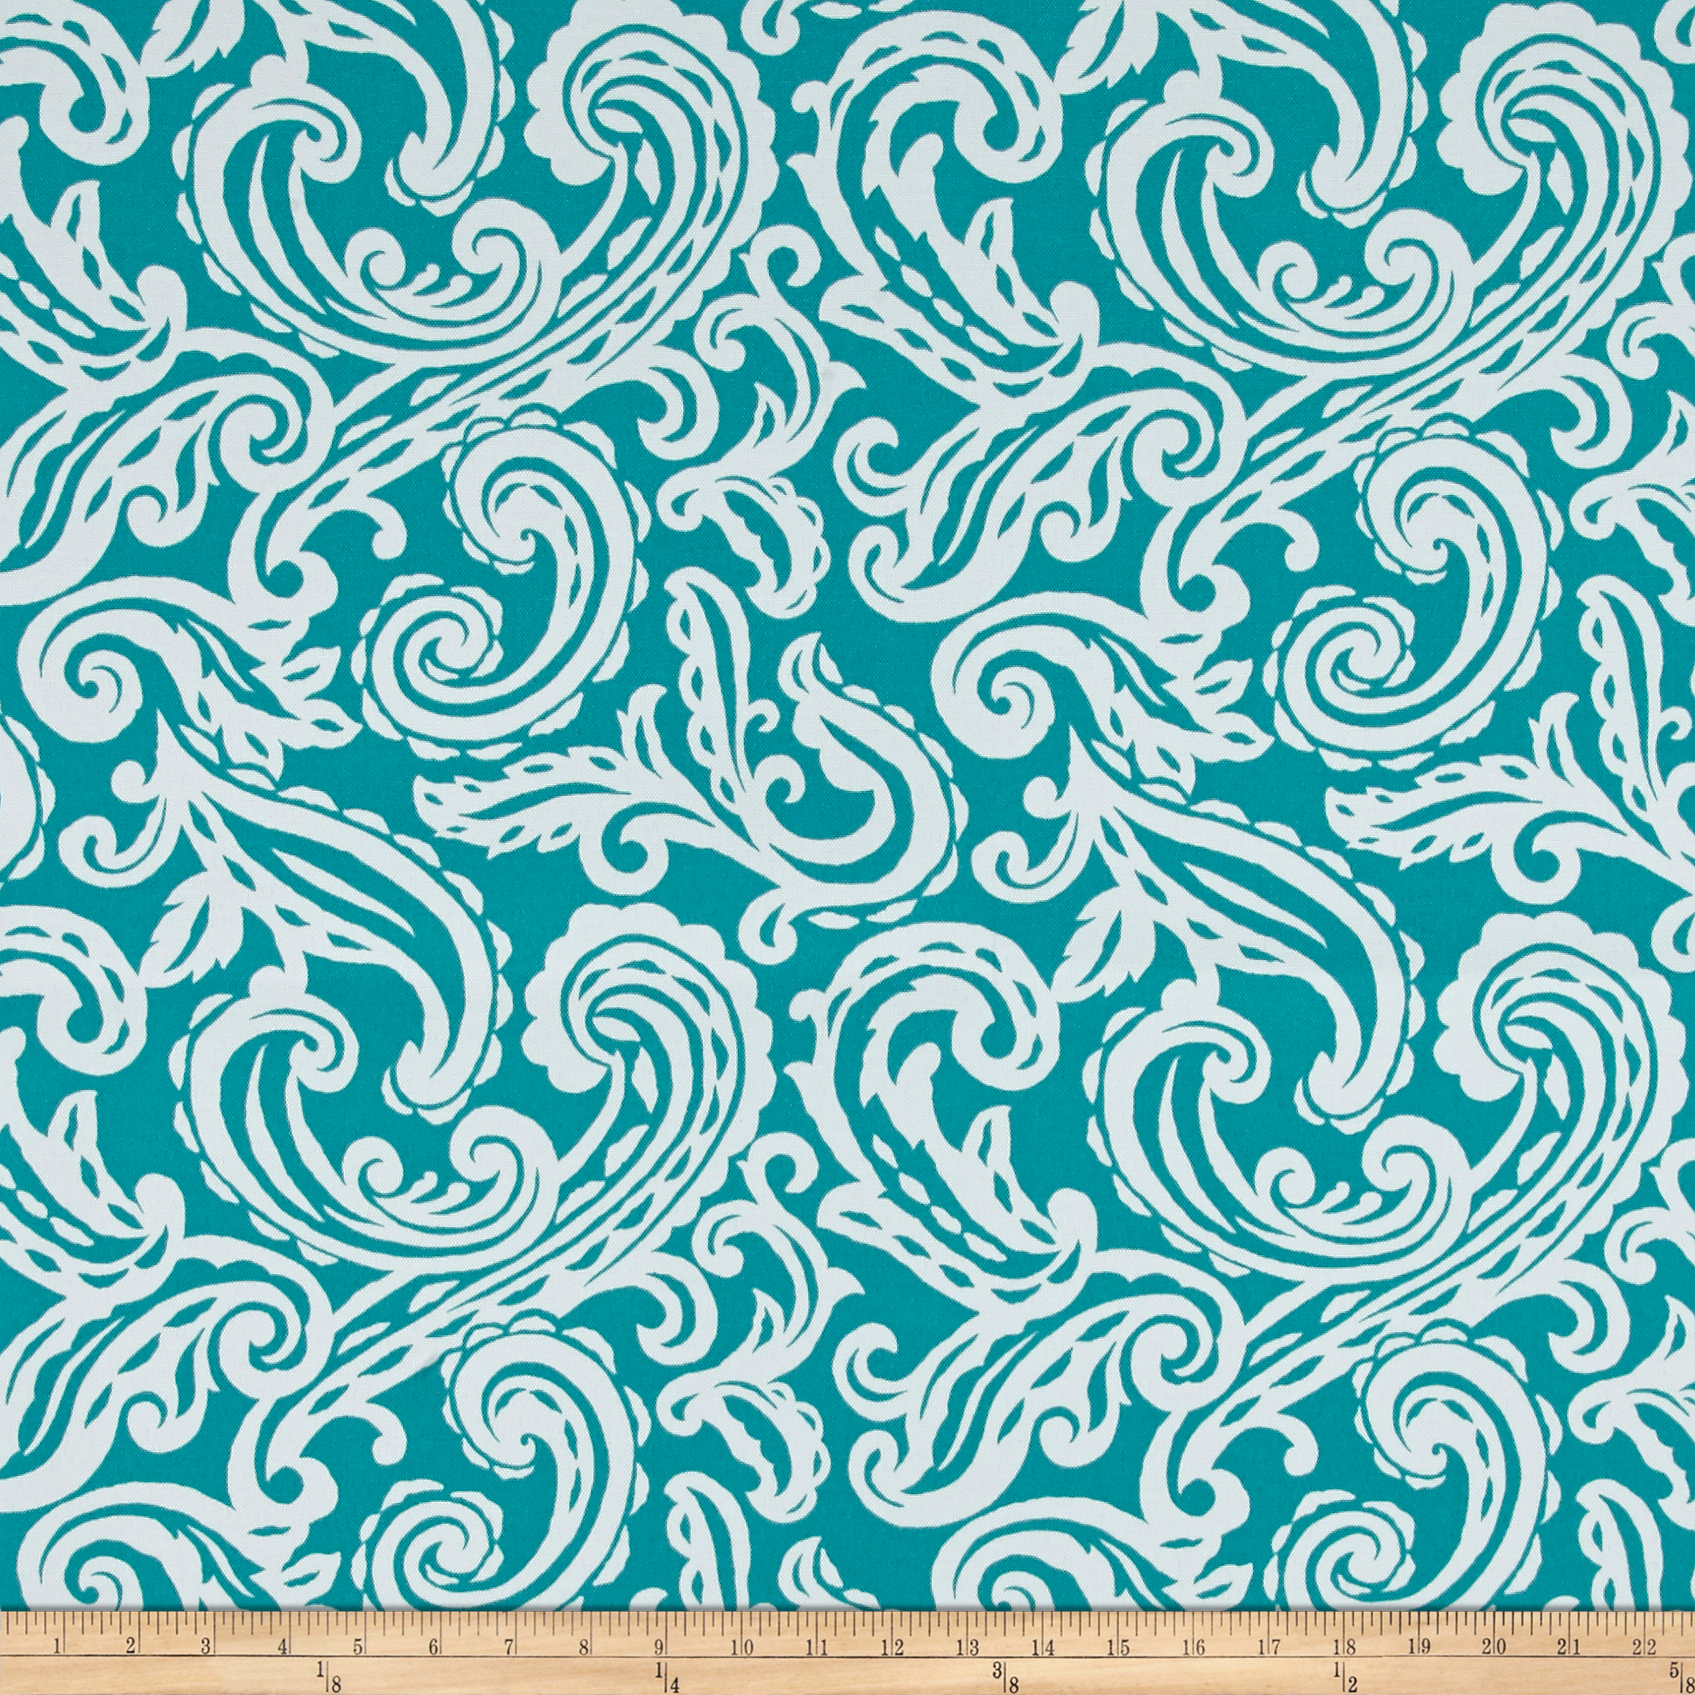 Terrasol Outdoor Colima Teal Fabric by Tempro in USA